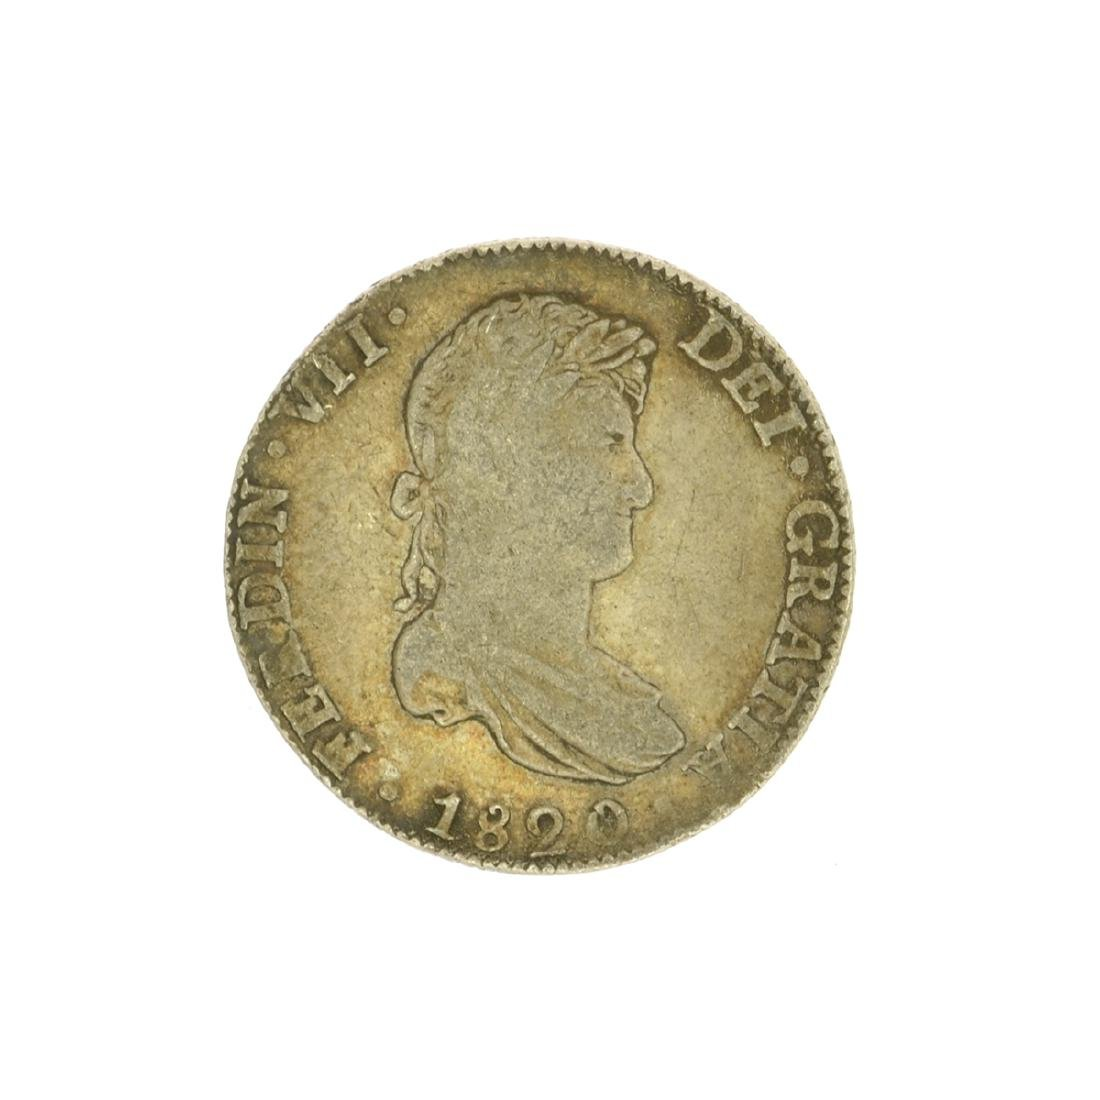 Extremely Rare Early Date 1820 Portrait Reales Very